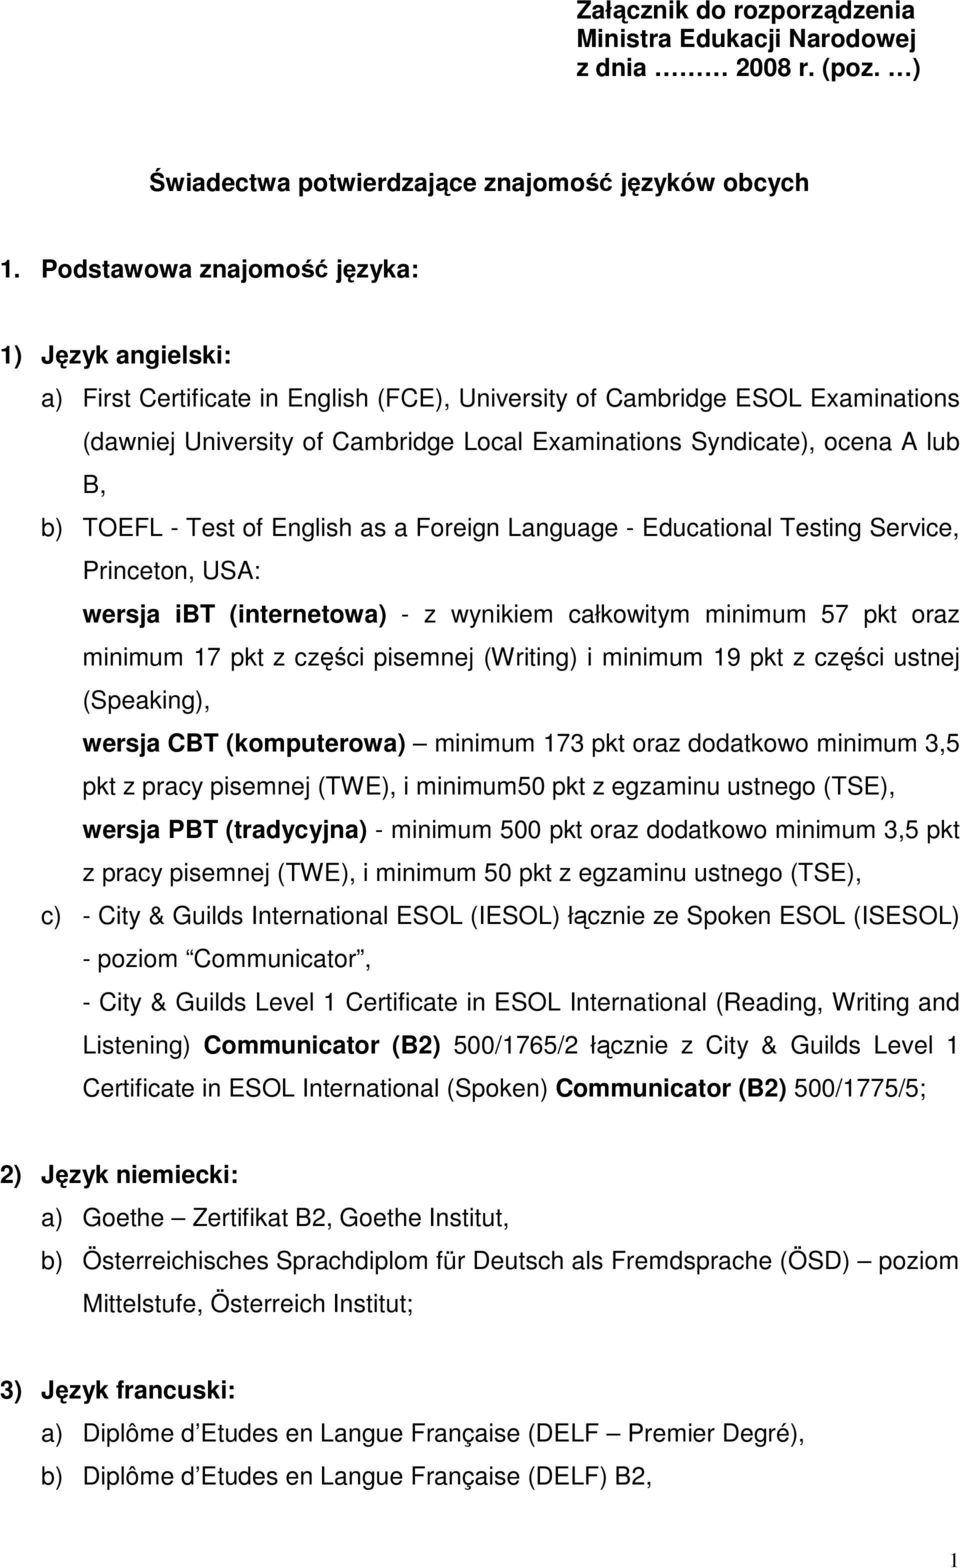 Test of English as a Foreign Language - Educational Testing Service, wersja ibt (internetowa) - z wynikiem całkowitym minimum 57 pkt oraz minimum 17 pkt z części pisemnej (Writing) i minimum 19 pkt z